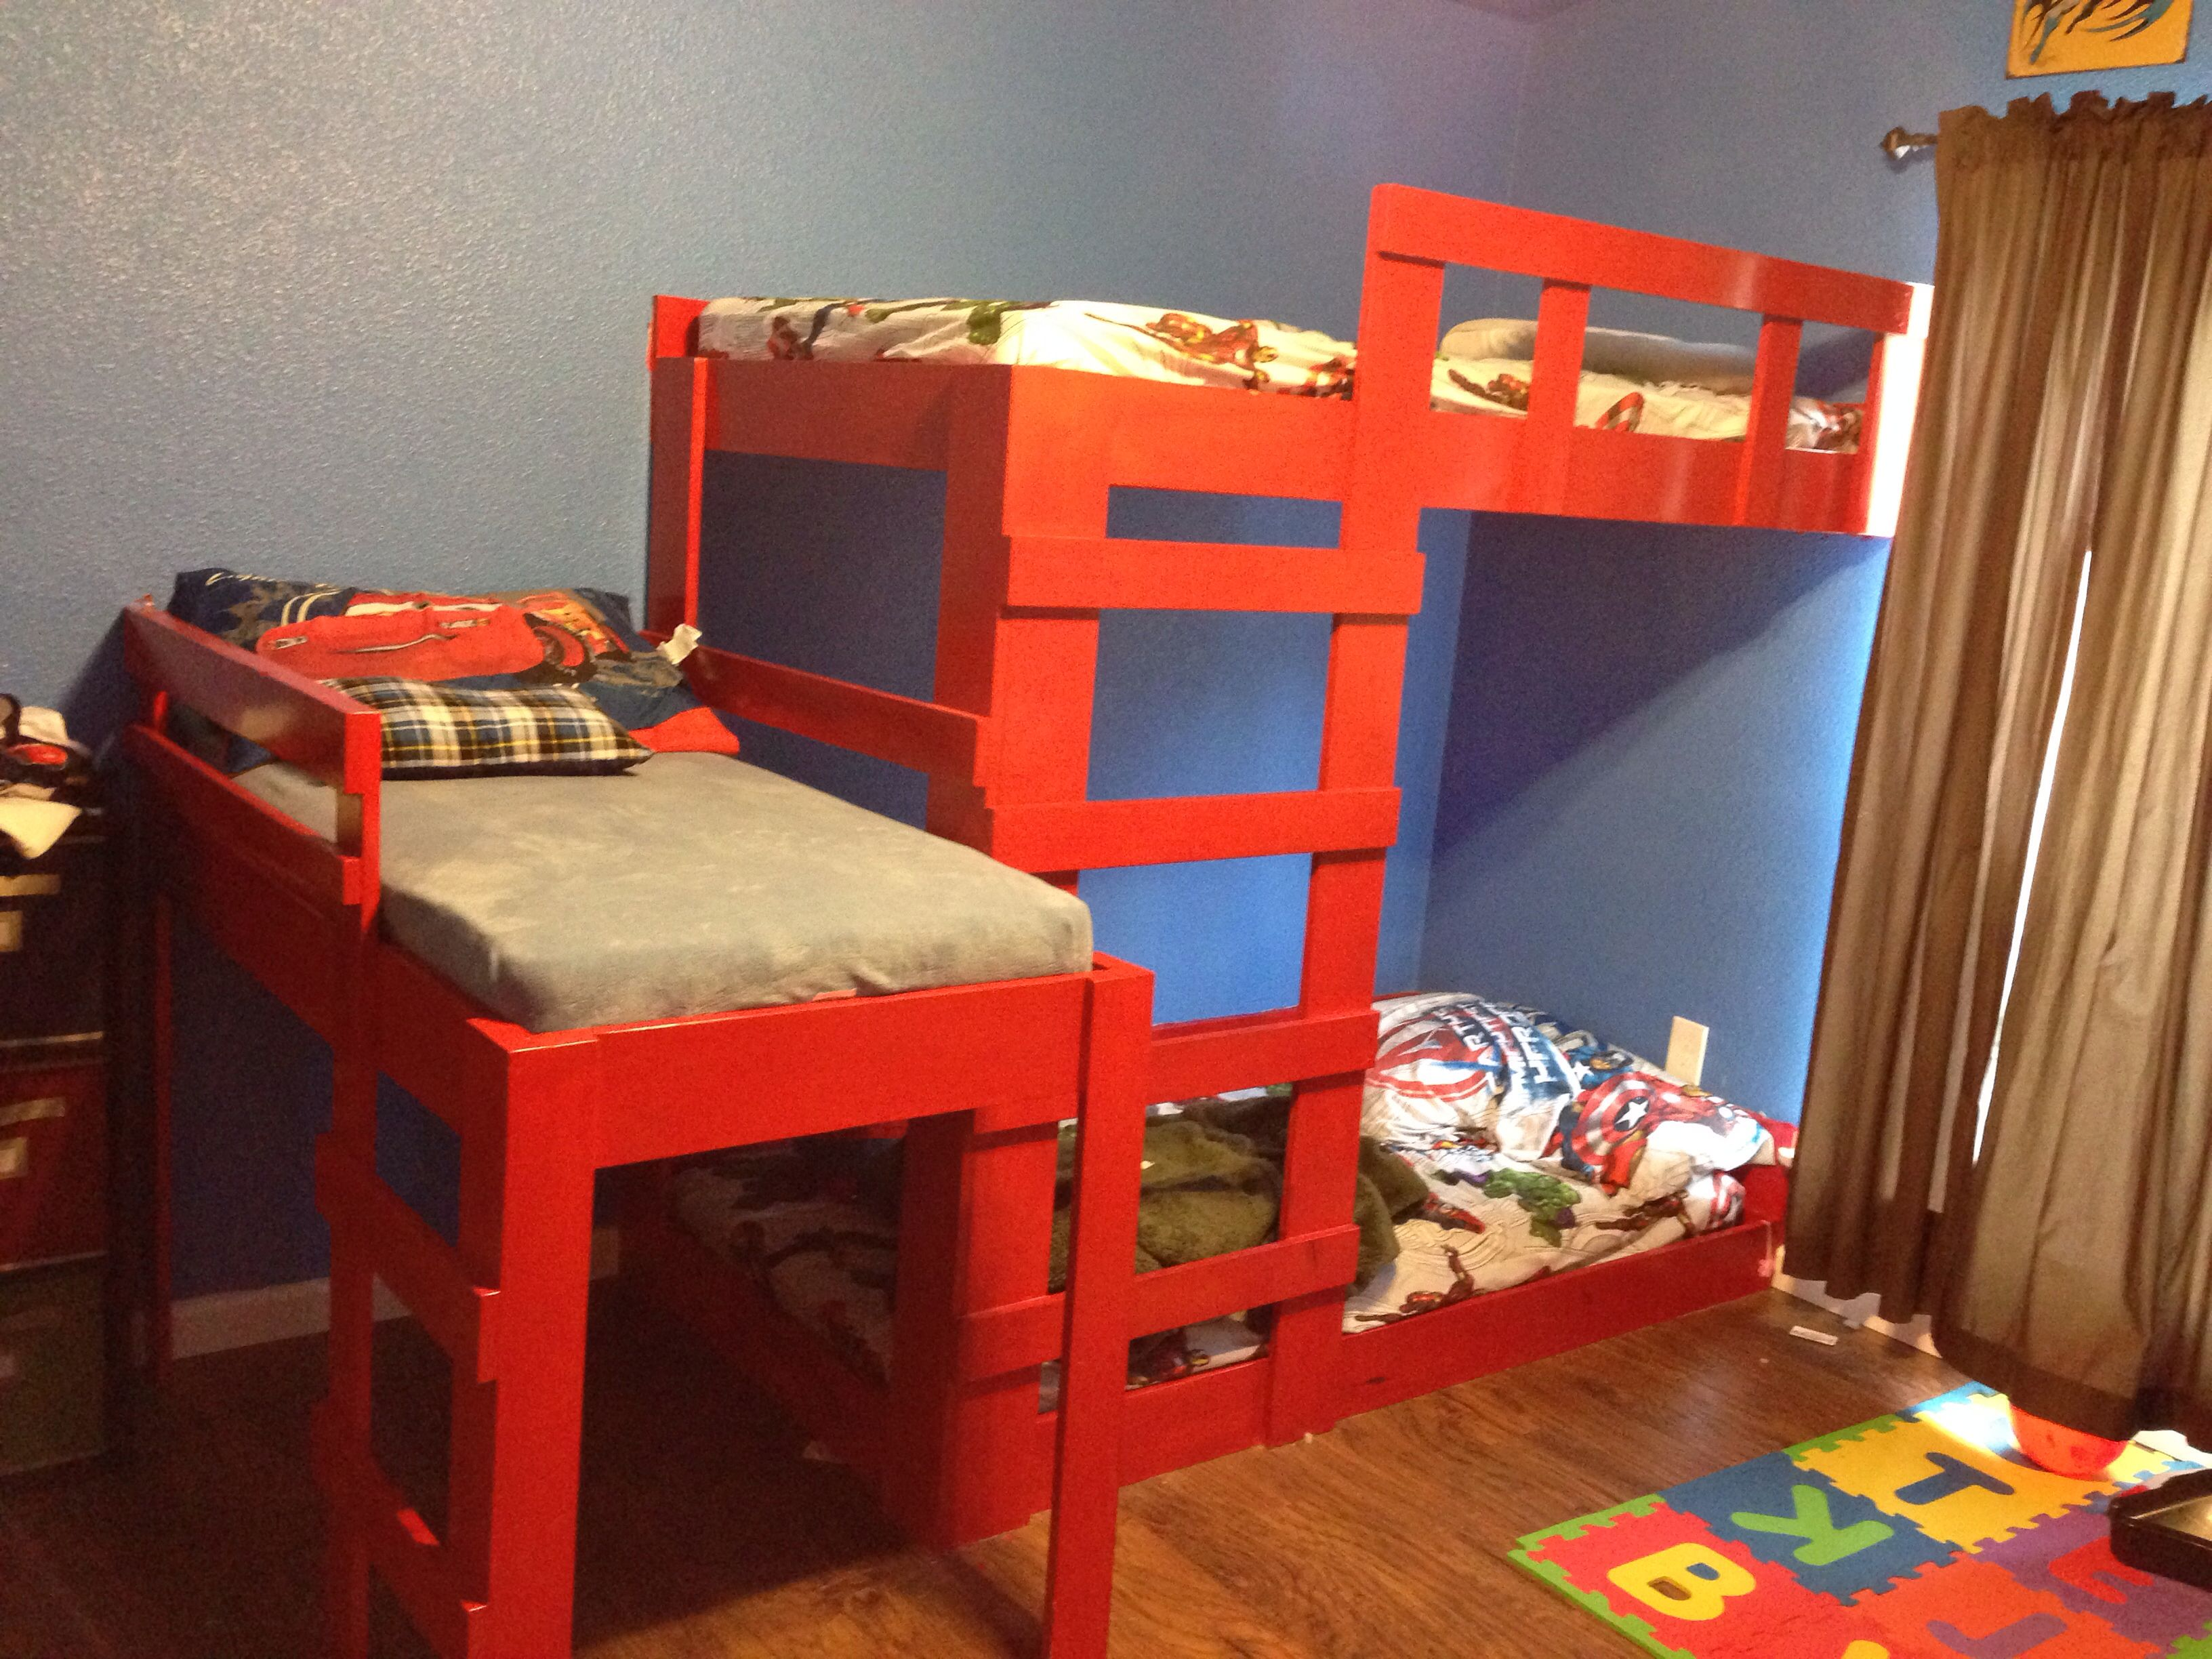 Best Diy Bunk Bed For 3 Boys Or 3 Girls Since We Aren T Sure 400 x 300